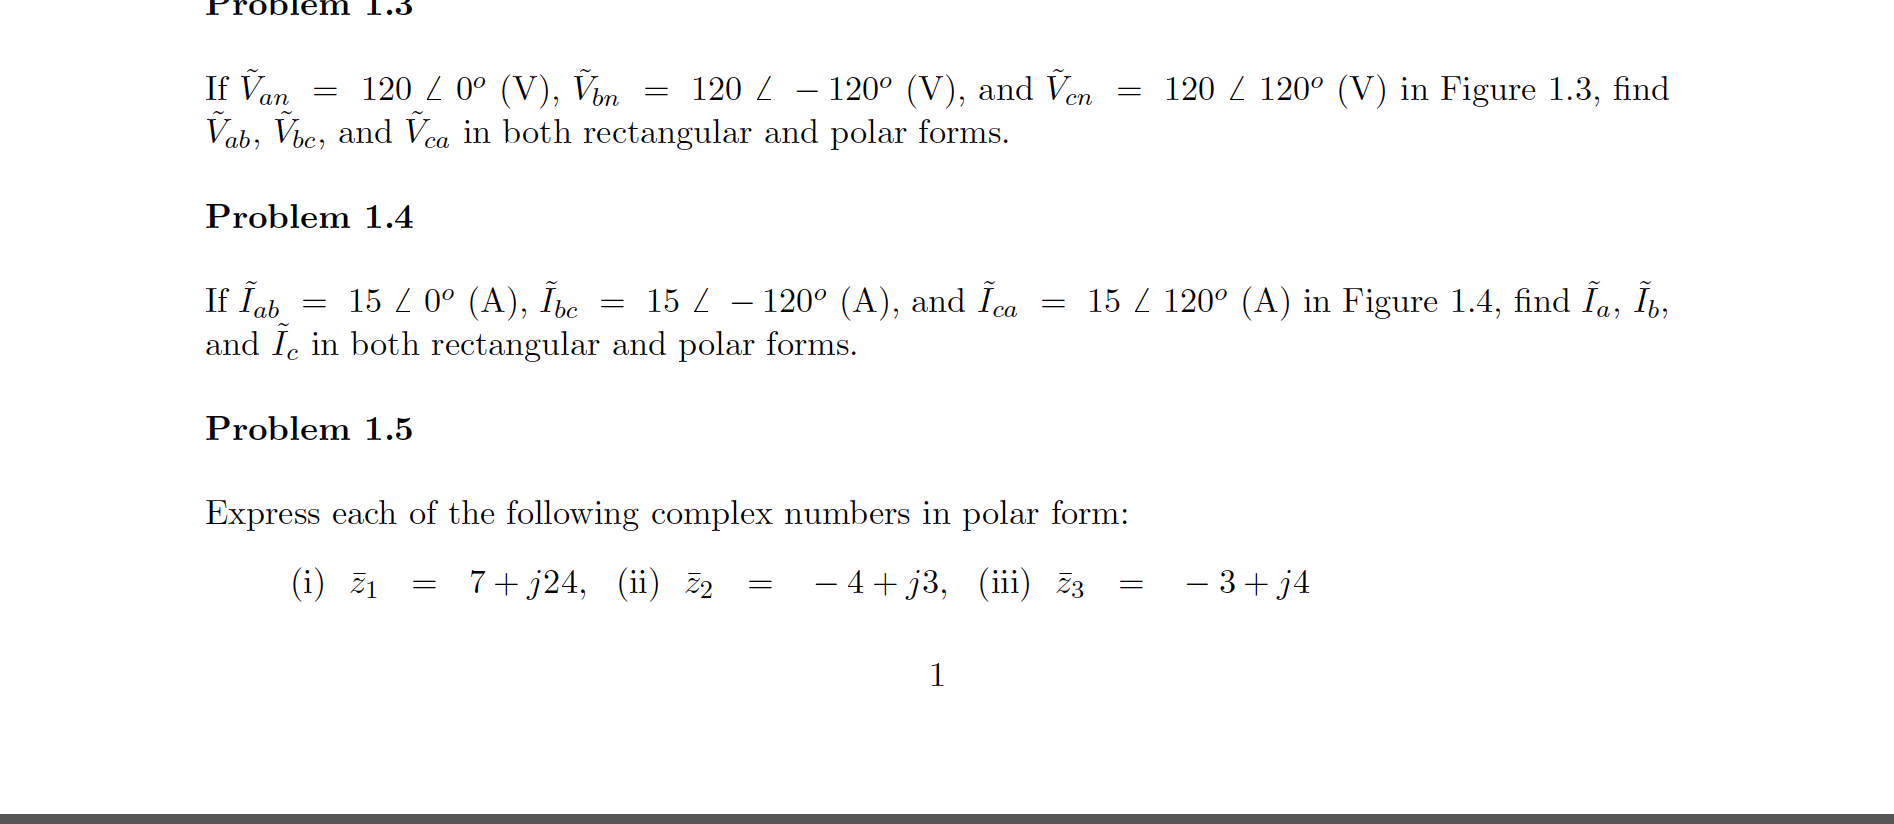 Consider Figure 1.2 and show that in both rectang